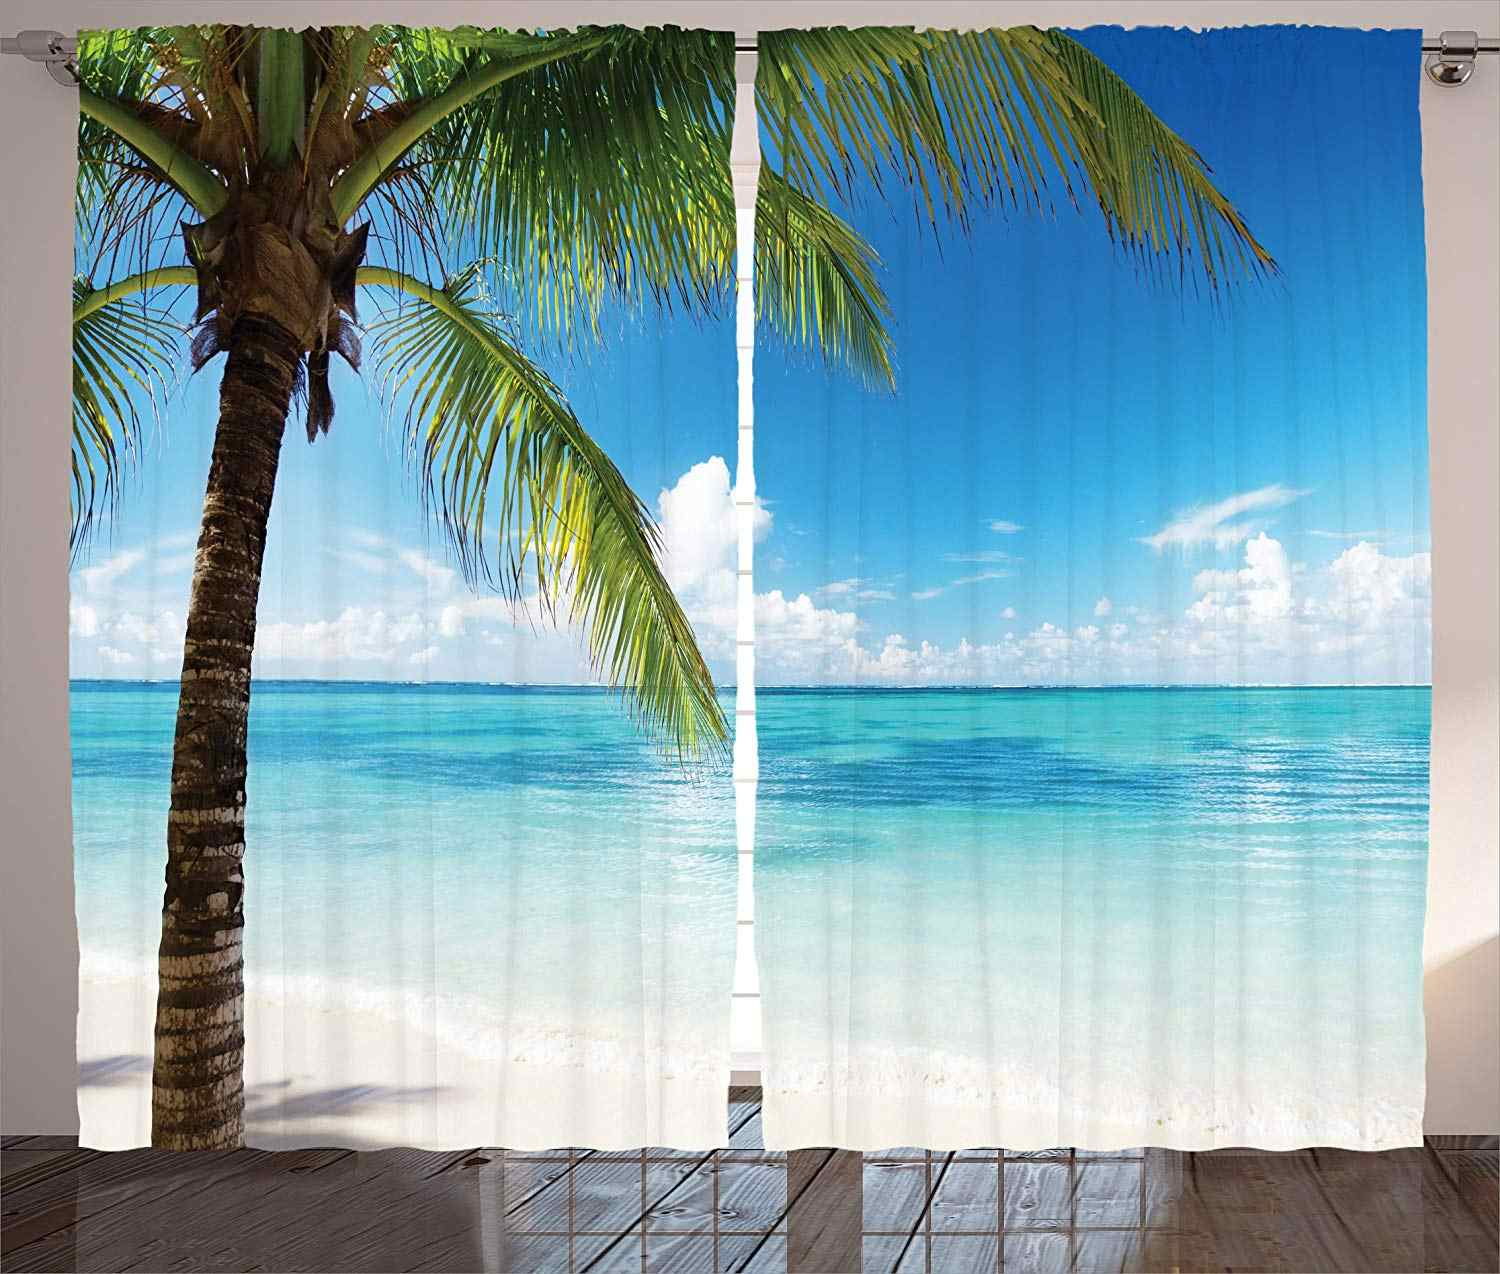 Ocean Curtains Exotic Beach Water and Palm Tree by The Shore with Clear Sky Landscape Image Living Room Bedroom Window Drapes